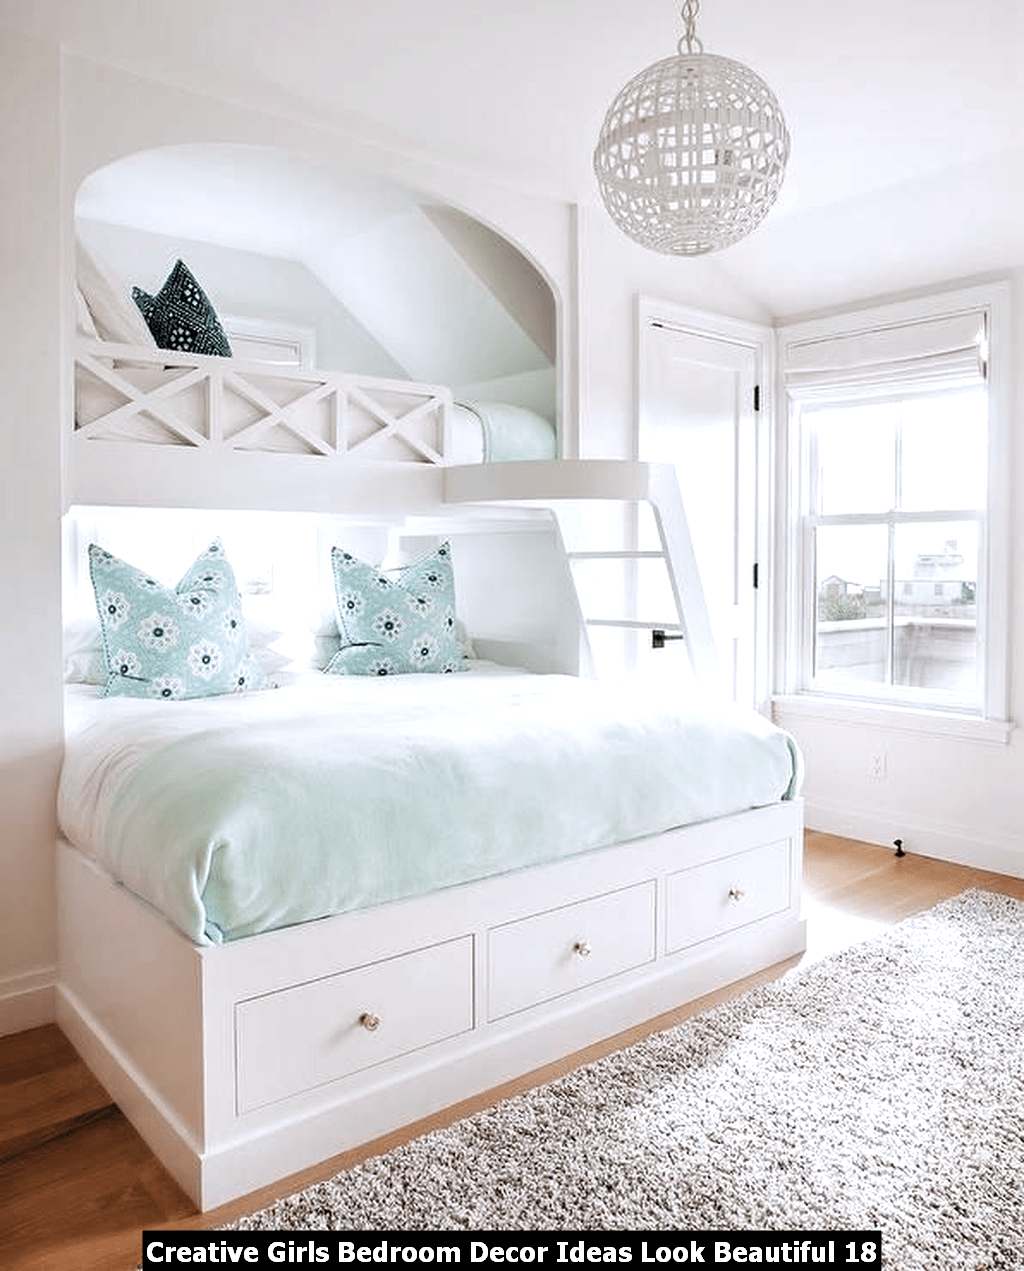 Creative Girls Bedroom Decor Ideas Look Beautiful 18